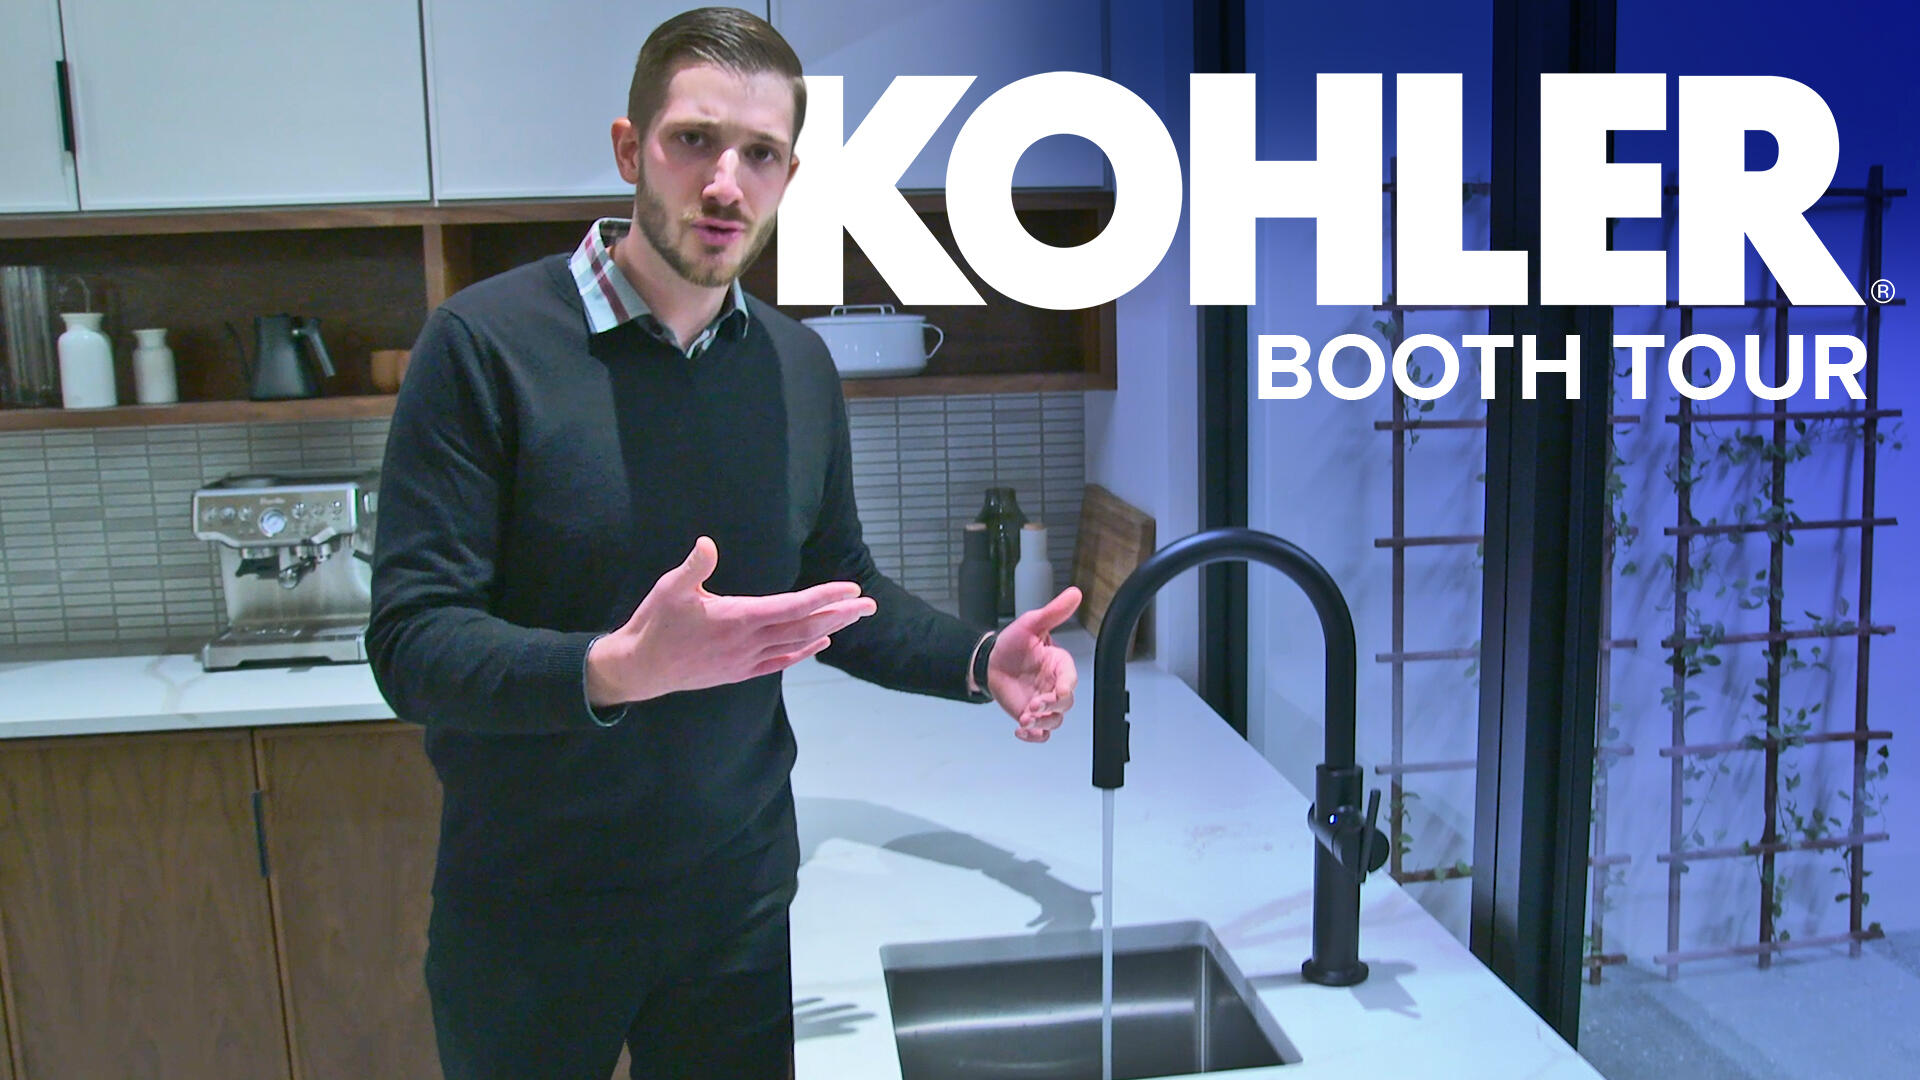 Video: Walking through Kohler's homemade CES booth